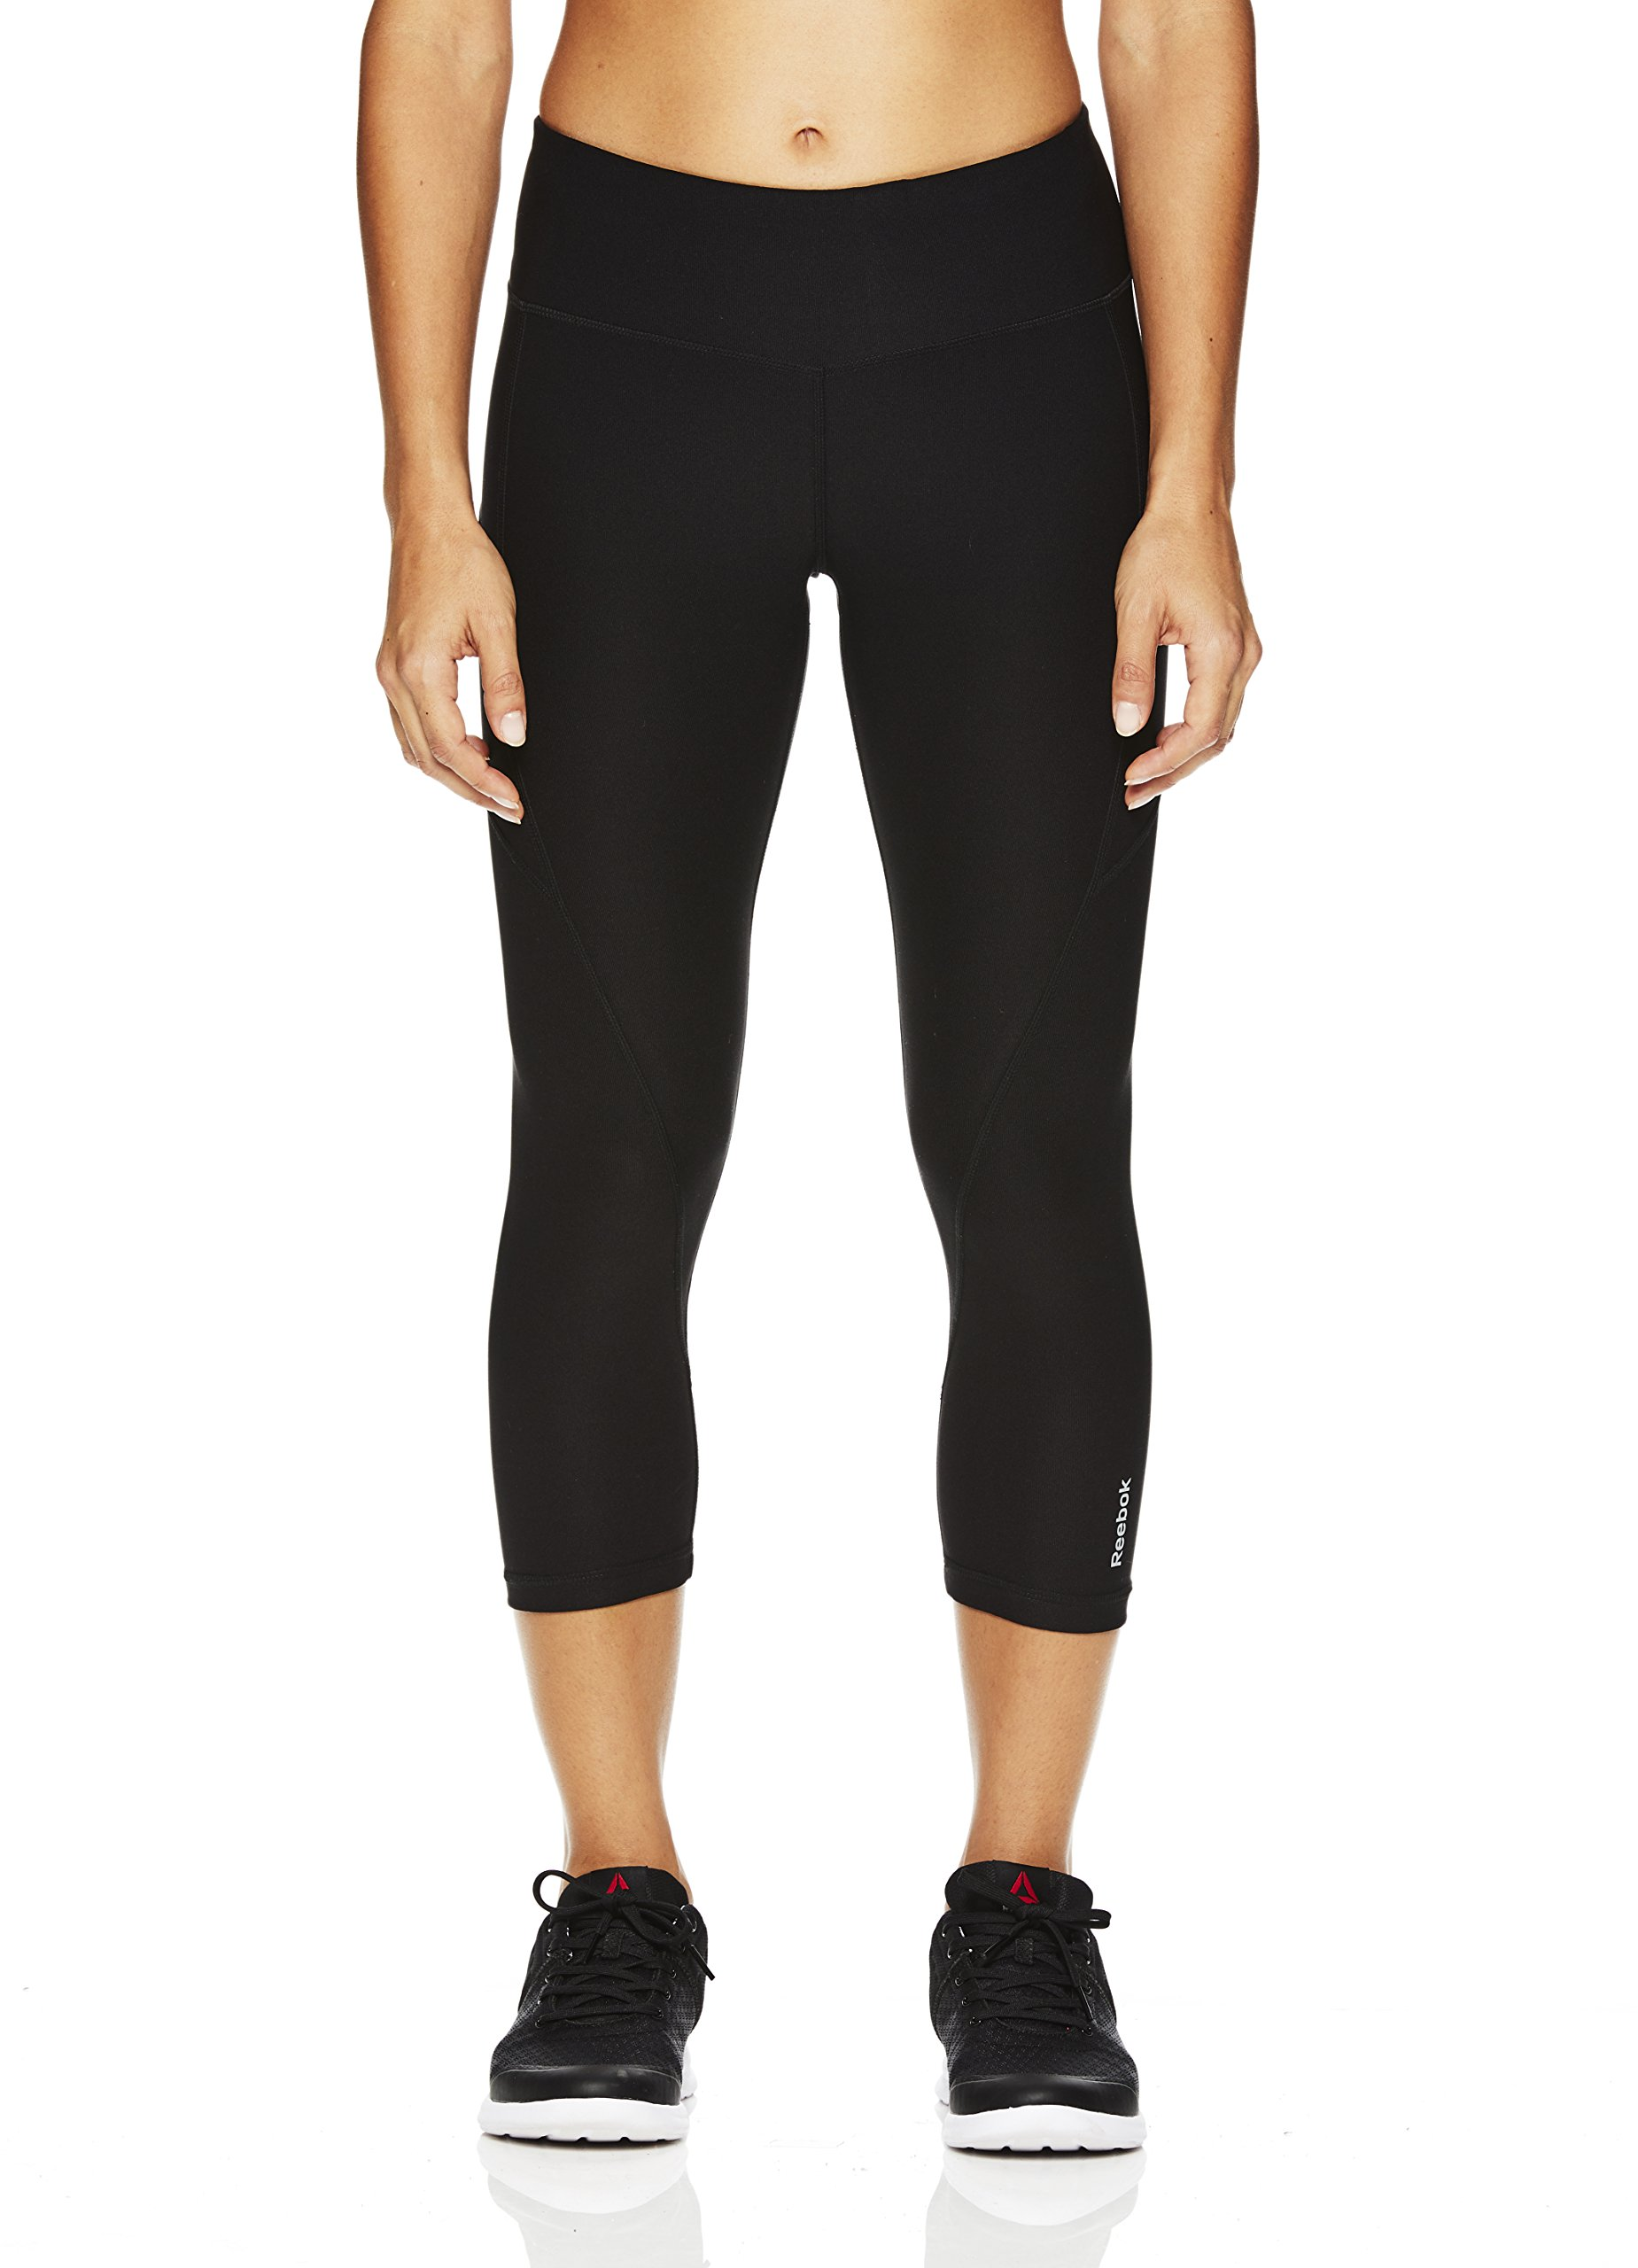 Reebok Women's Printed Capri Leggings With Mid-Rise Waist Performance Compression Tights, Quick Black, Medium